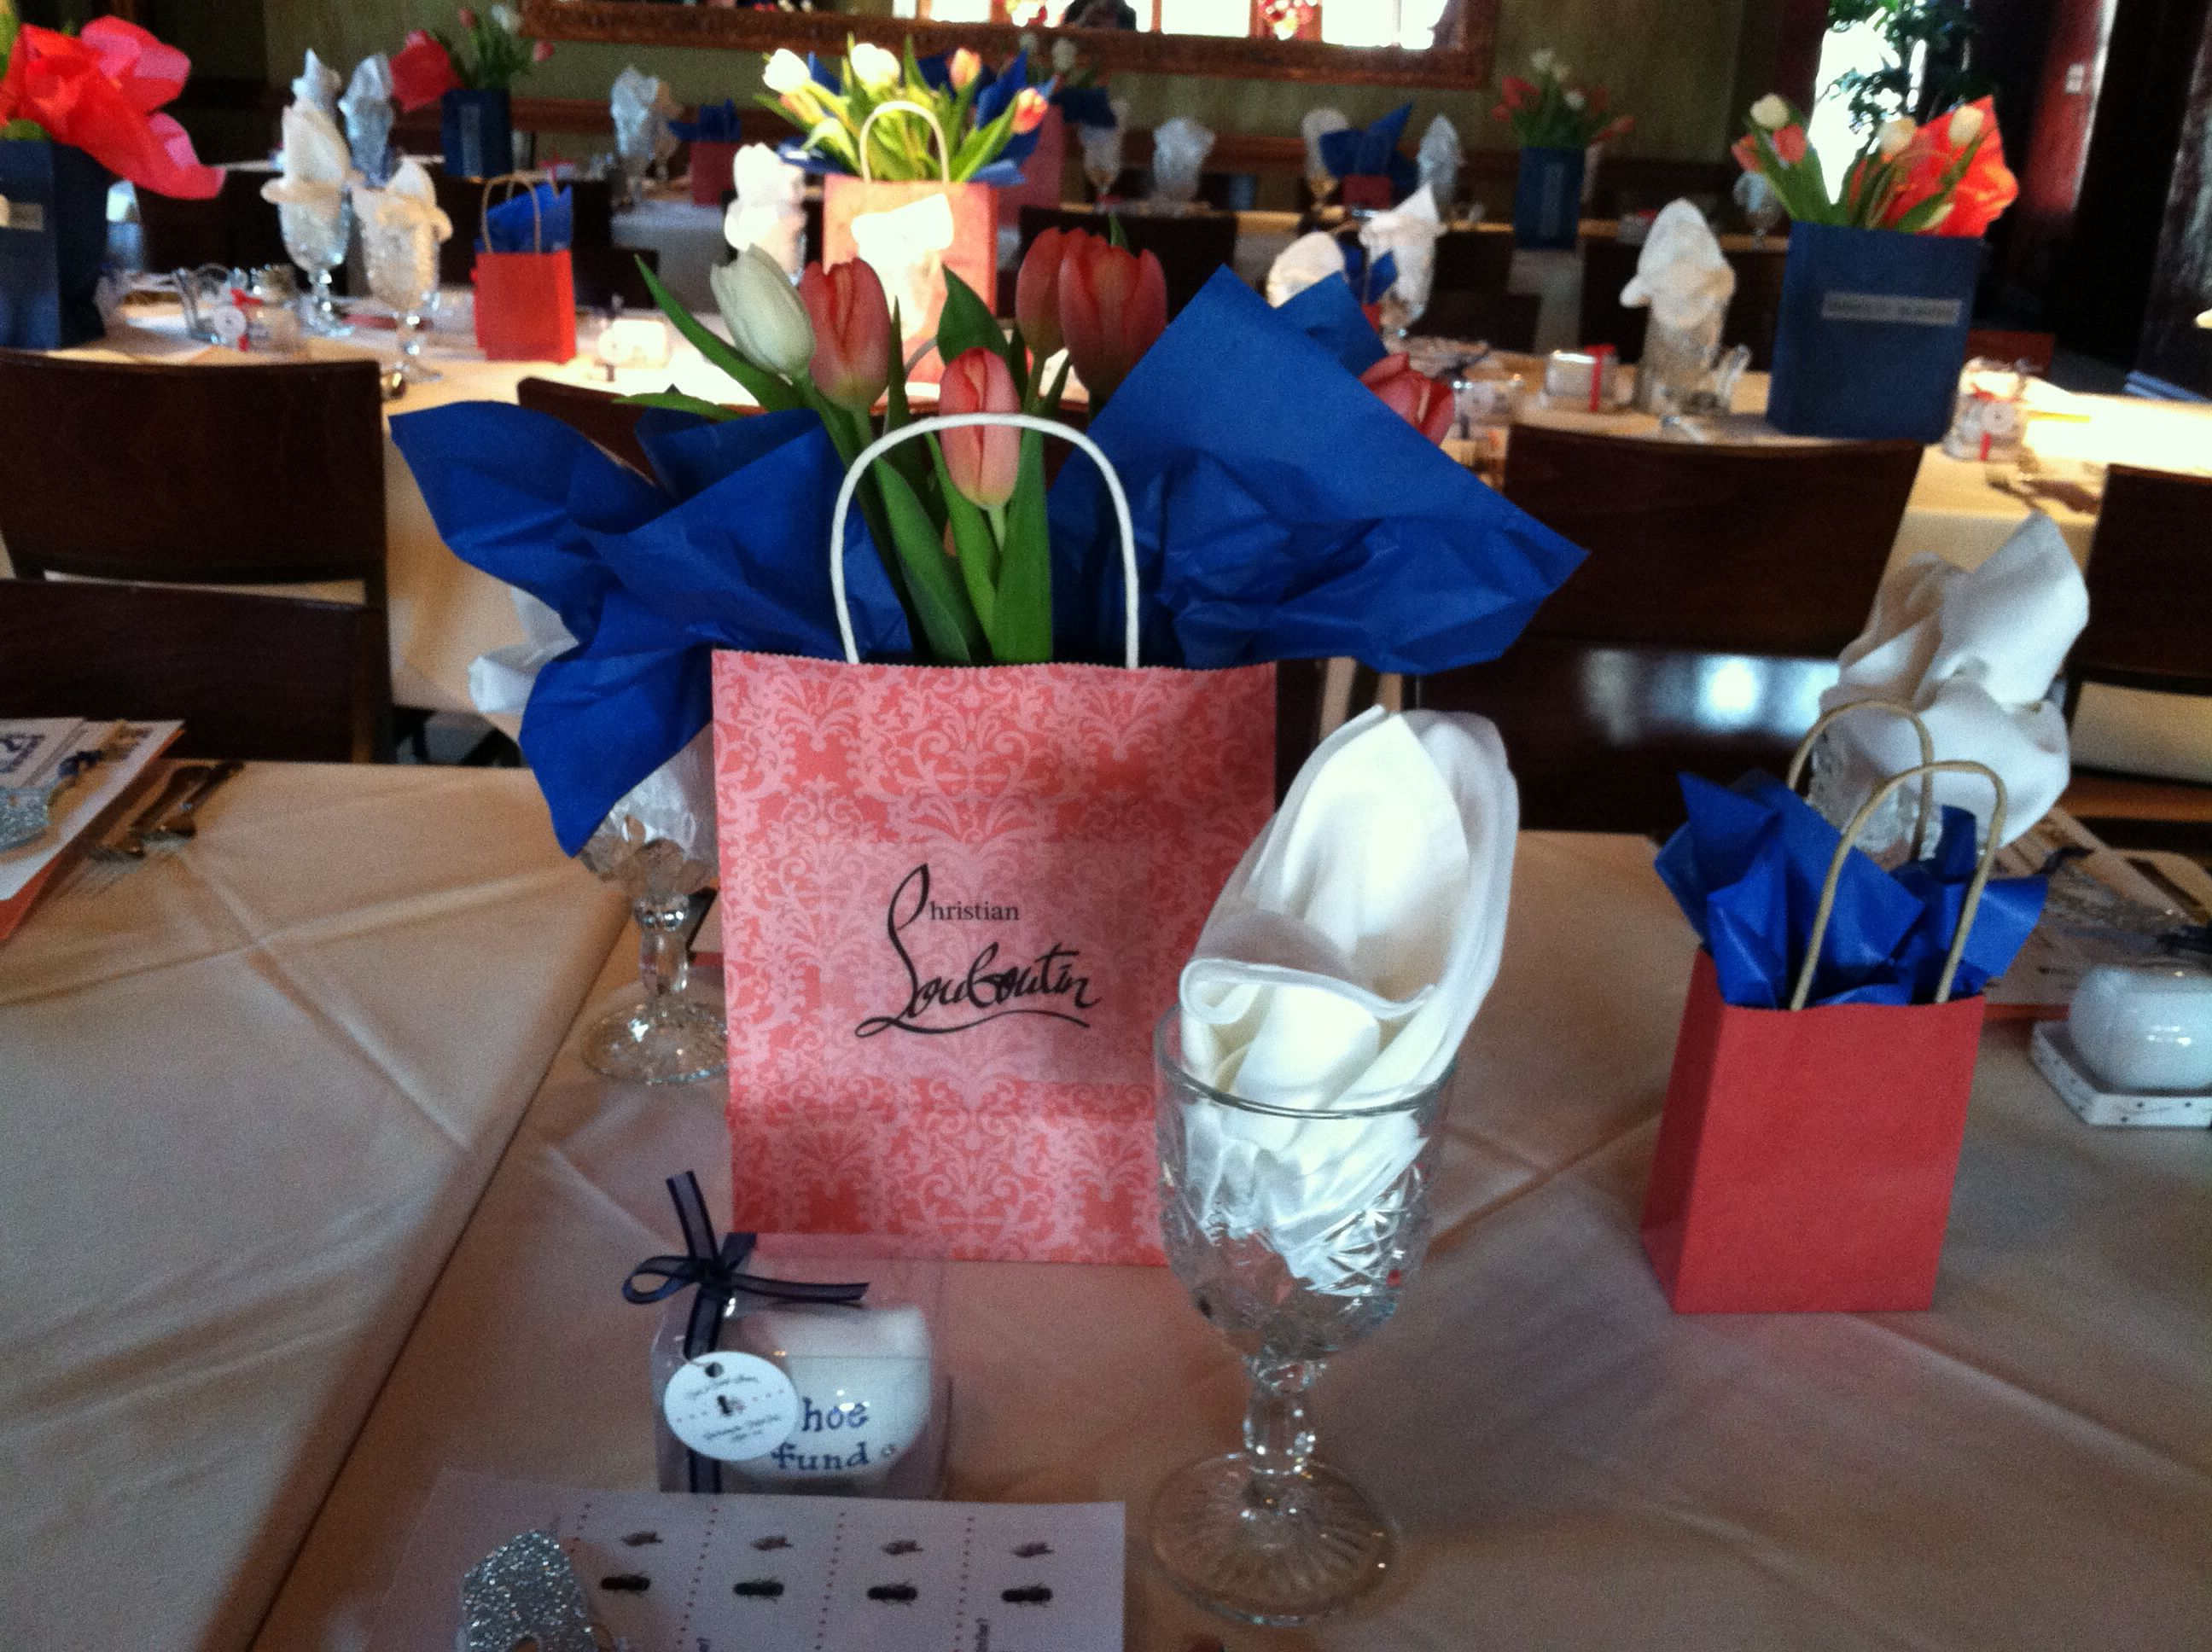 Shoe theme for my daughters bridal shower.  We took designer logo's and put them on shopping bags stuffed with tulips